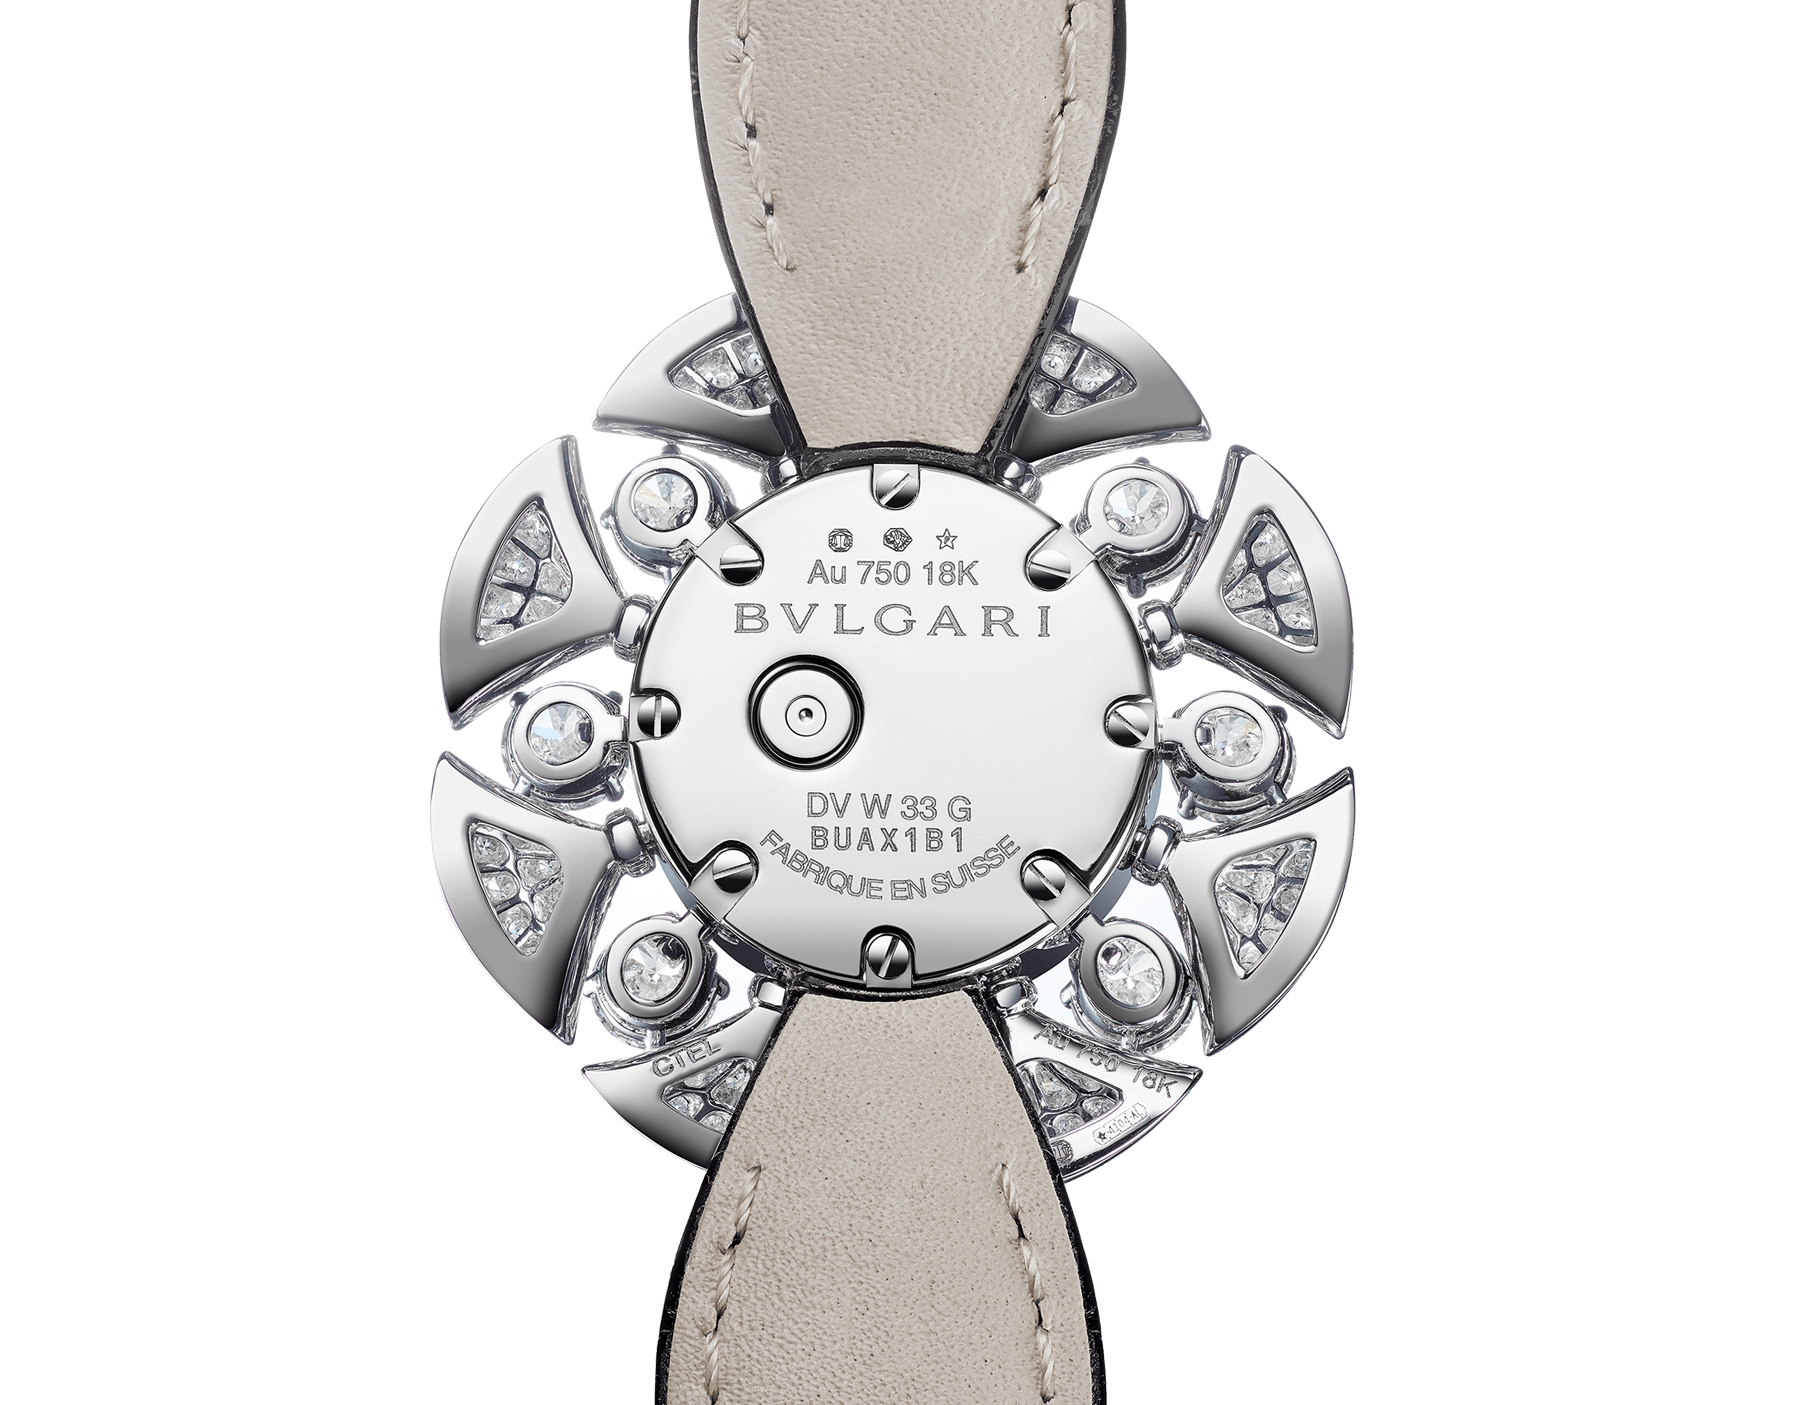 DIVAS' DREAM Divissima High Jewellery watch with 18 kt white gold case and mobile petals set with 8 large round brilliant-cut diamonds and other round brilliant-cut diamonds, pavé diamond dial and black alligator bracelet. Water-resistant up to 30 metres 103474 image 3